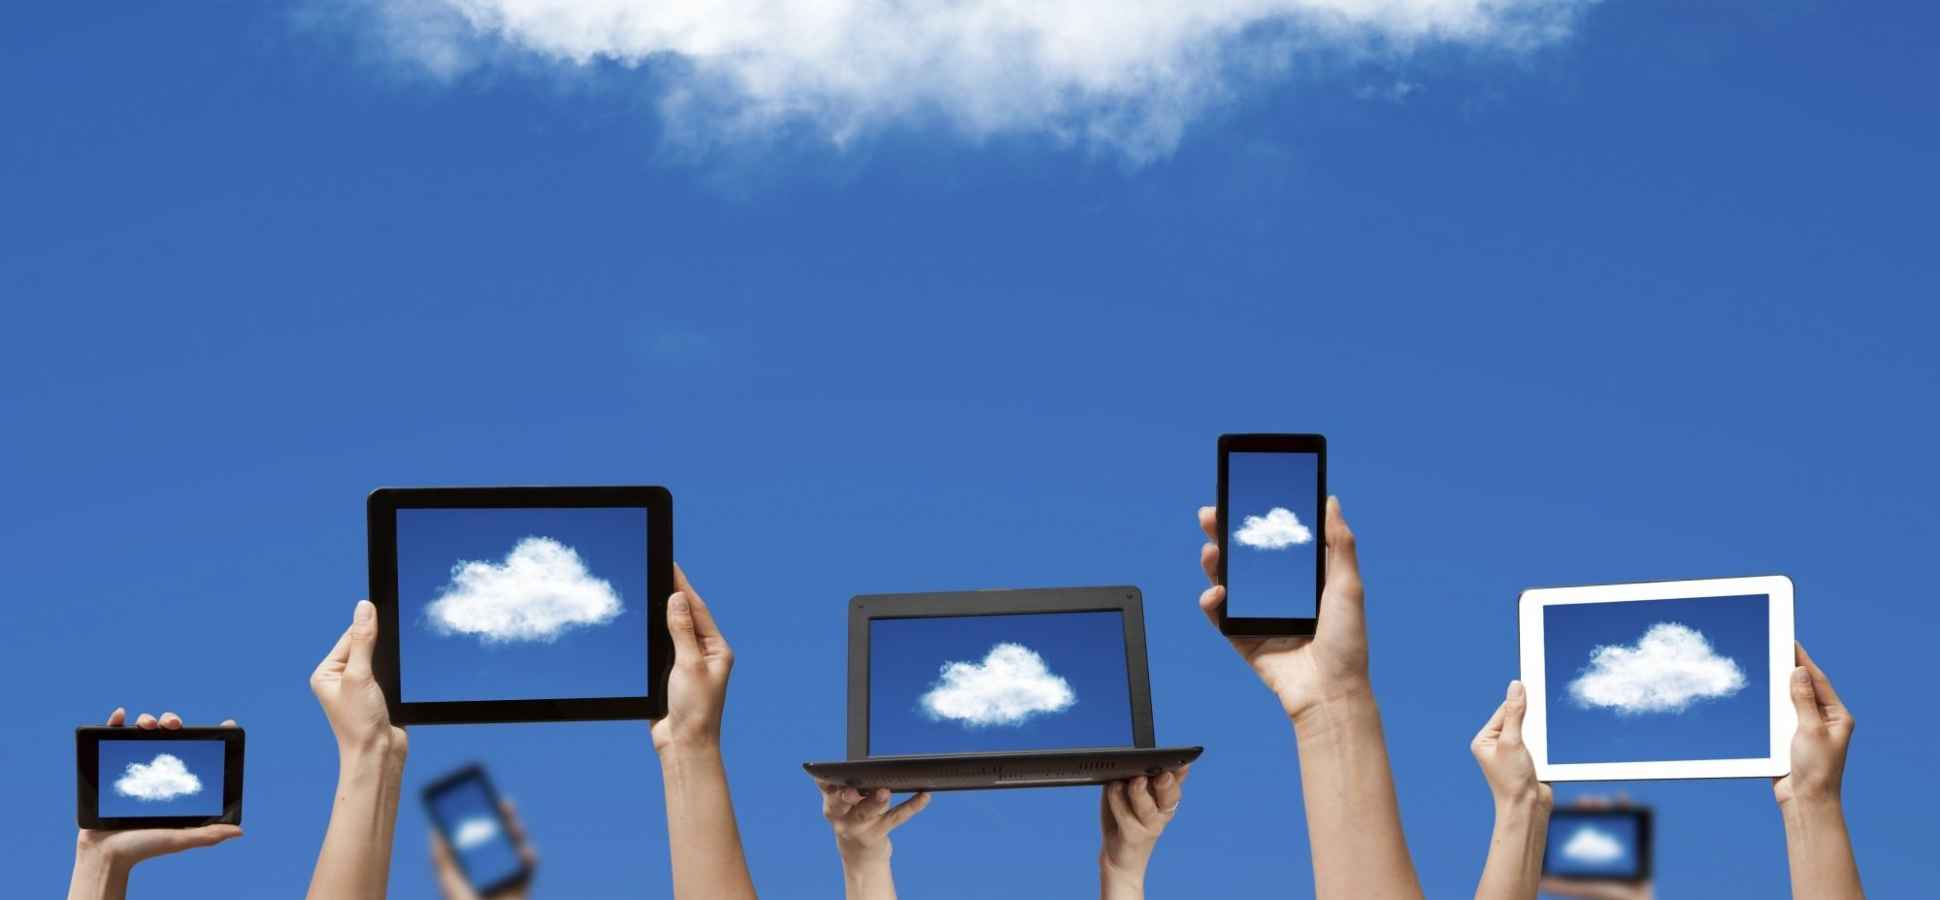 7 Cloud Services Every Small-Business Owner Should Try